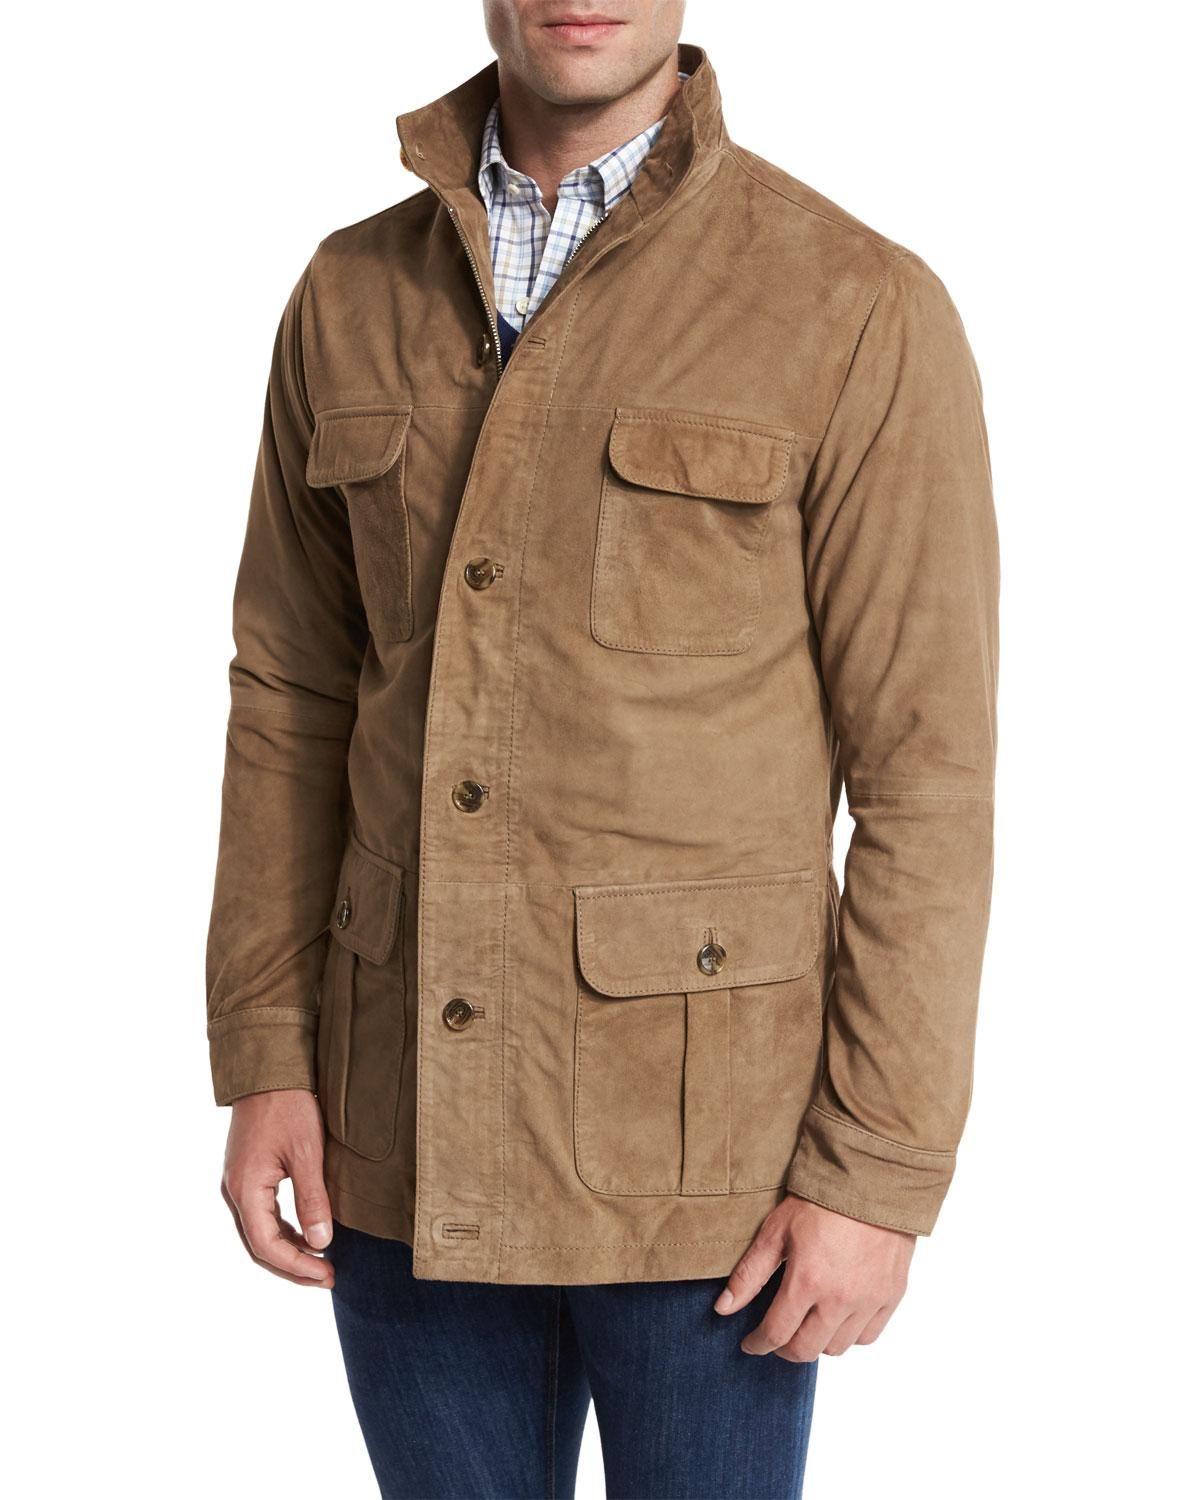 Peter Millar Suede Safari Jacket In Natural For Men Lyst